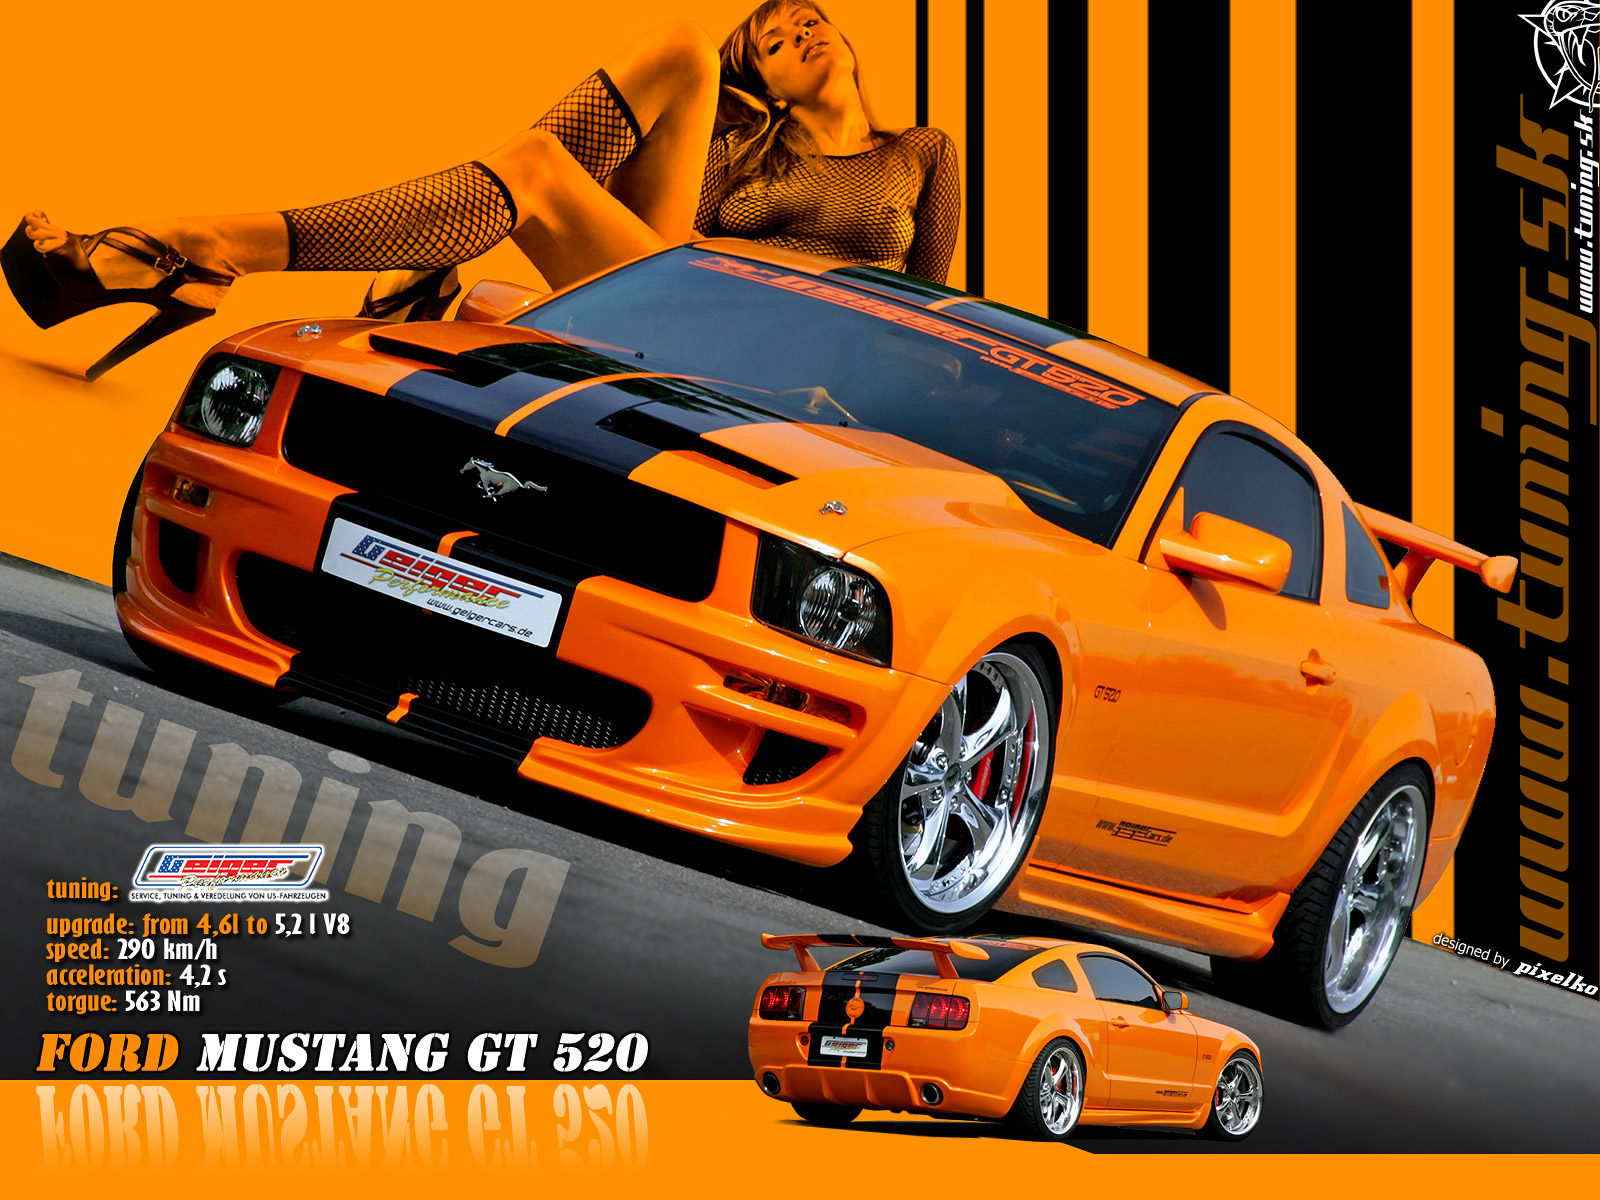 Armani Cars Mustang GT Ford Models Cars Cool Cars - Cool cars mustang